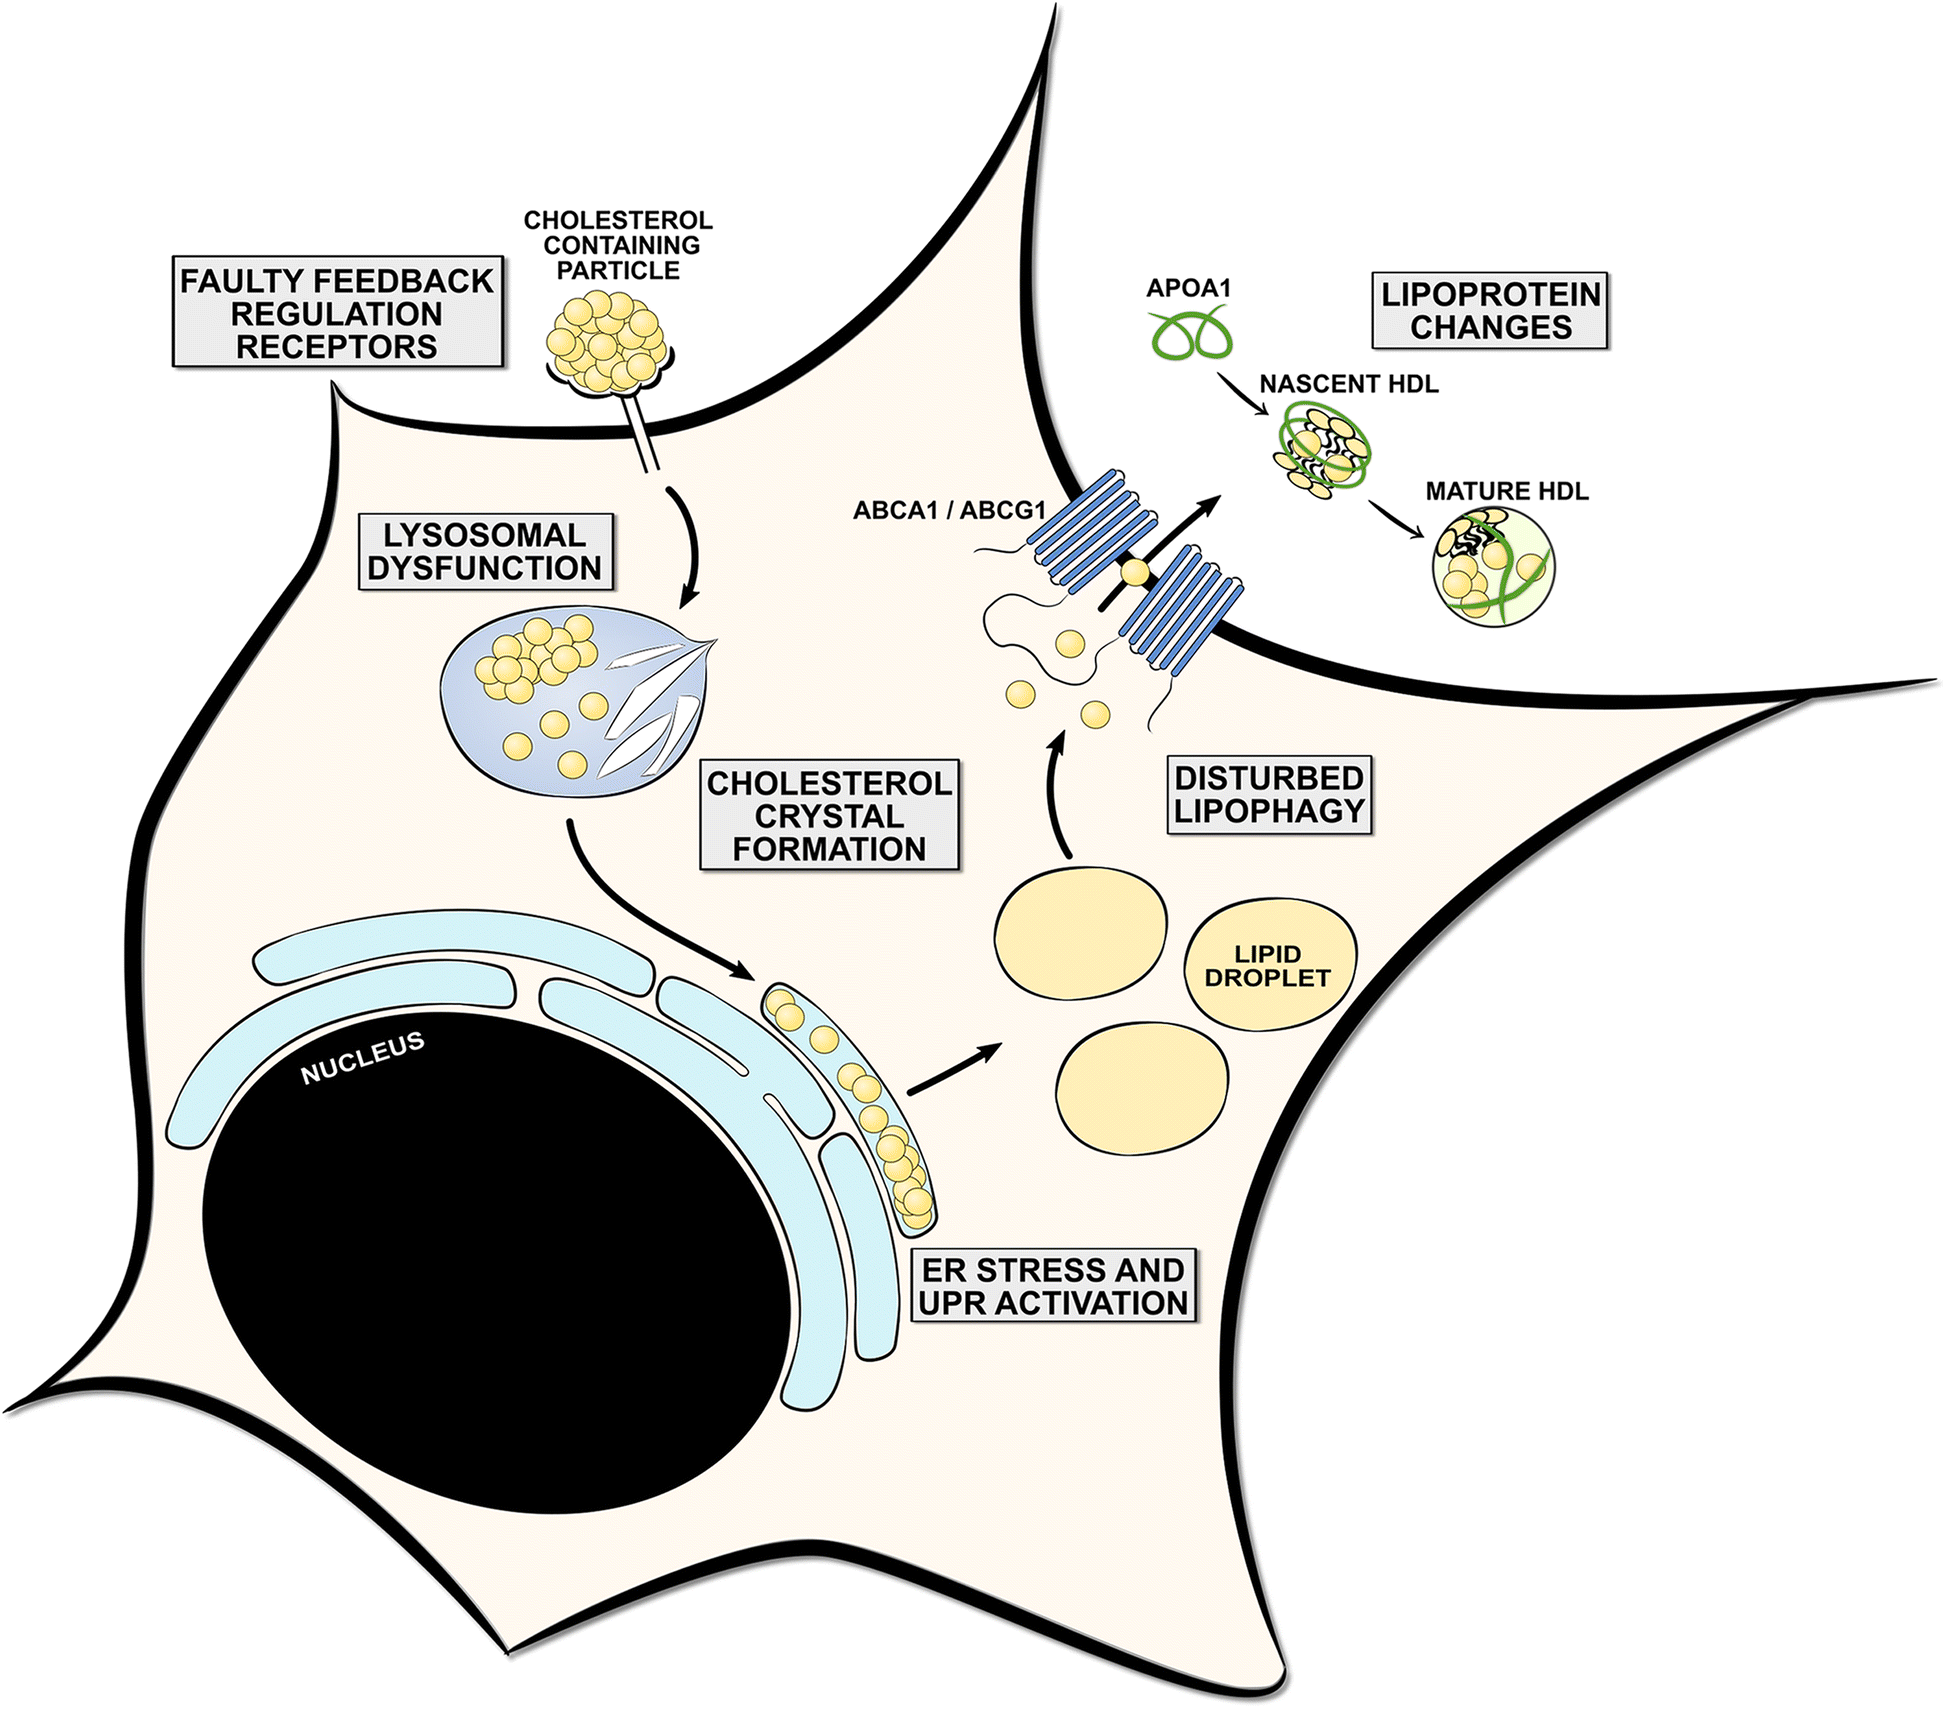 The physiology of foamy phagocytes in multiple sclerosis.